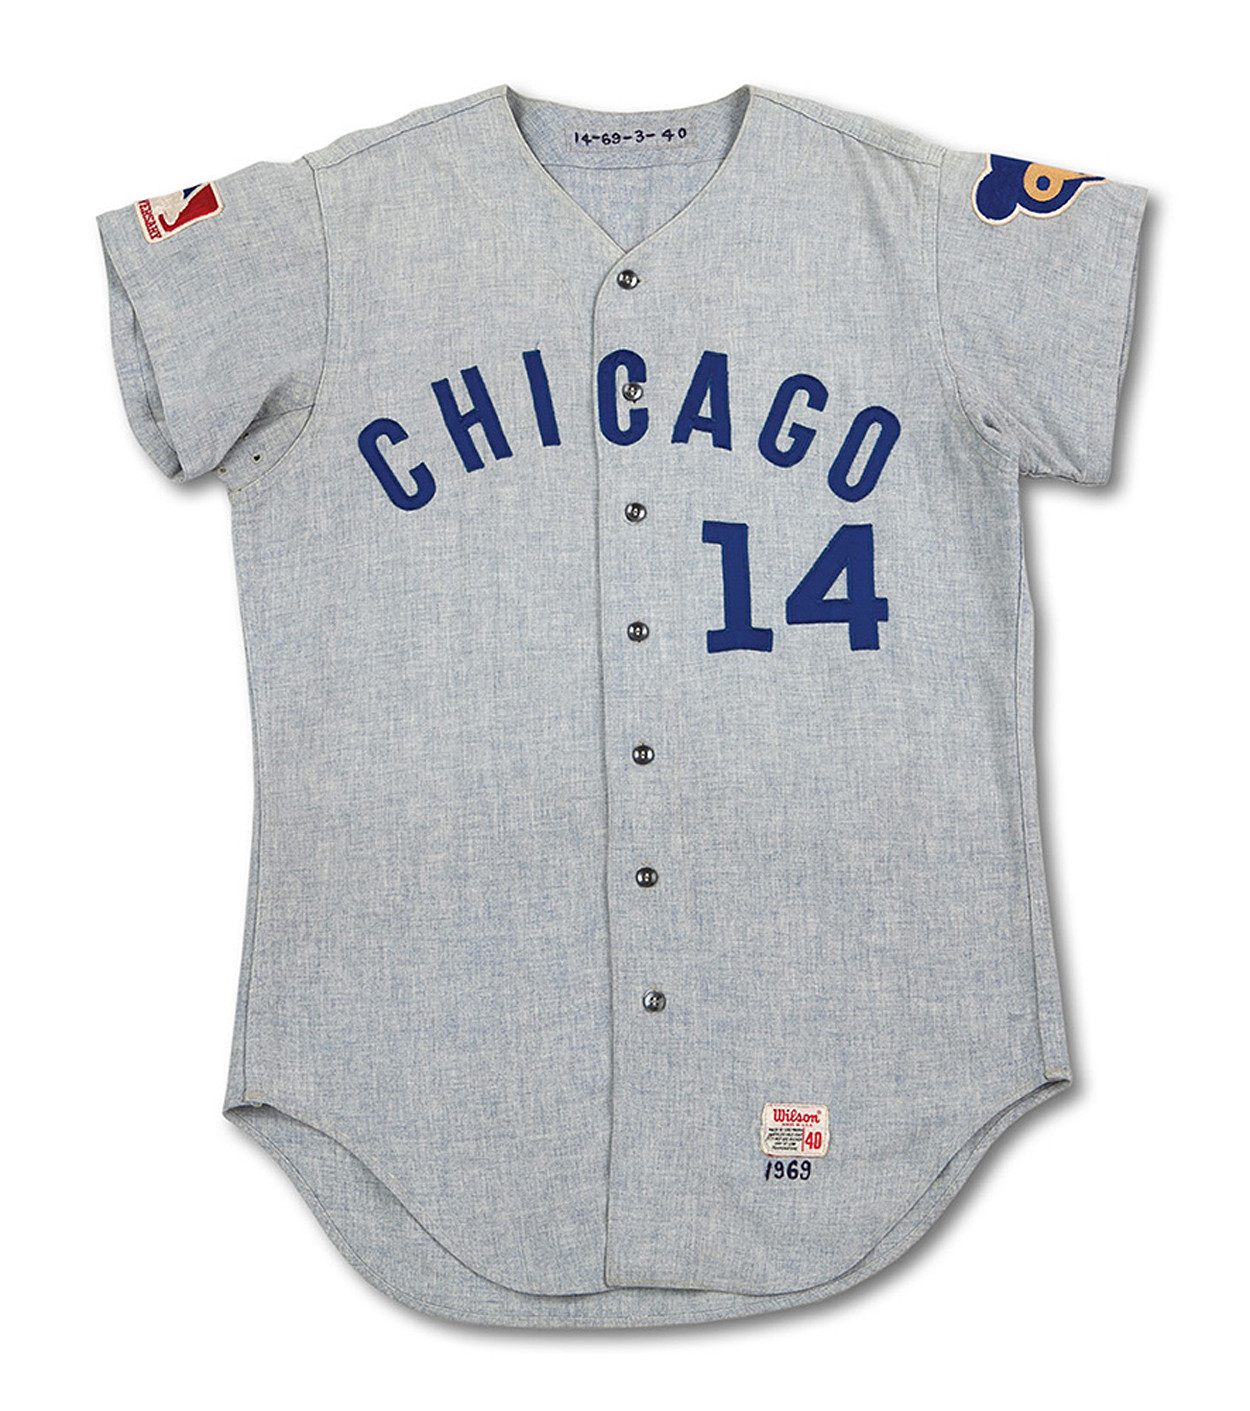 fed00d137113 Rare Ernie Banks jersey from 1969 goes up for auction - Chicago Tribune